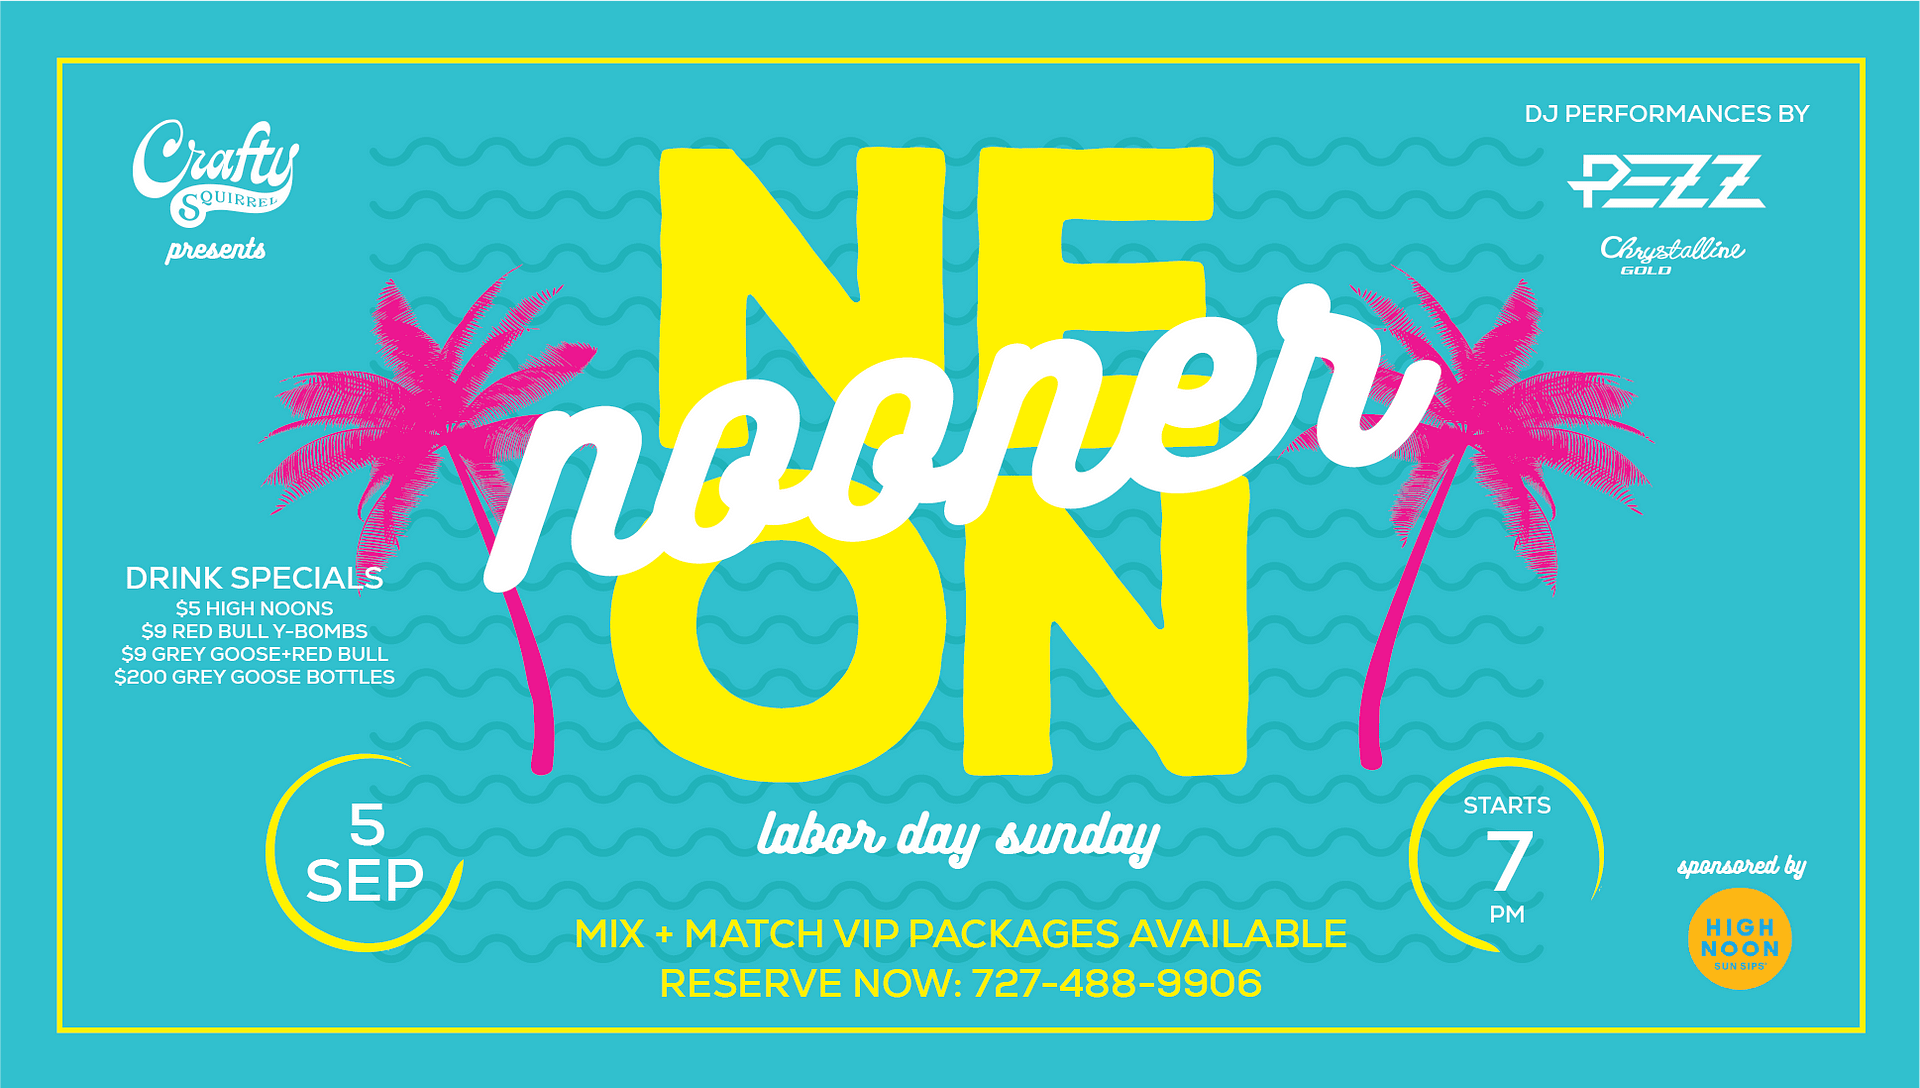 St. Pete Labor Day Sunday Party at the Crafty Squirrel